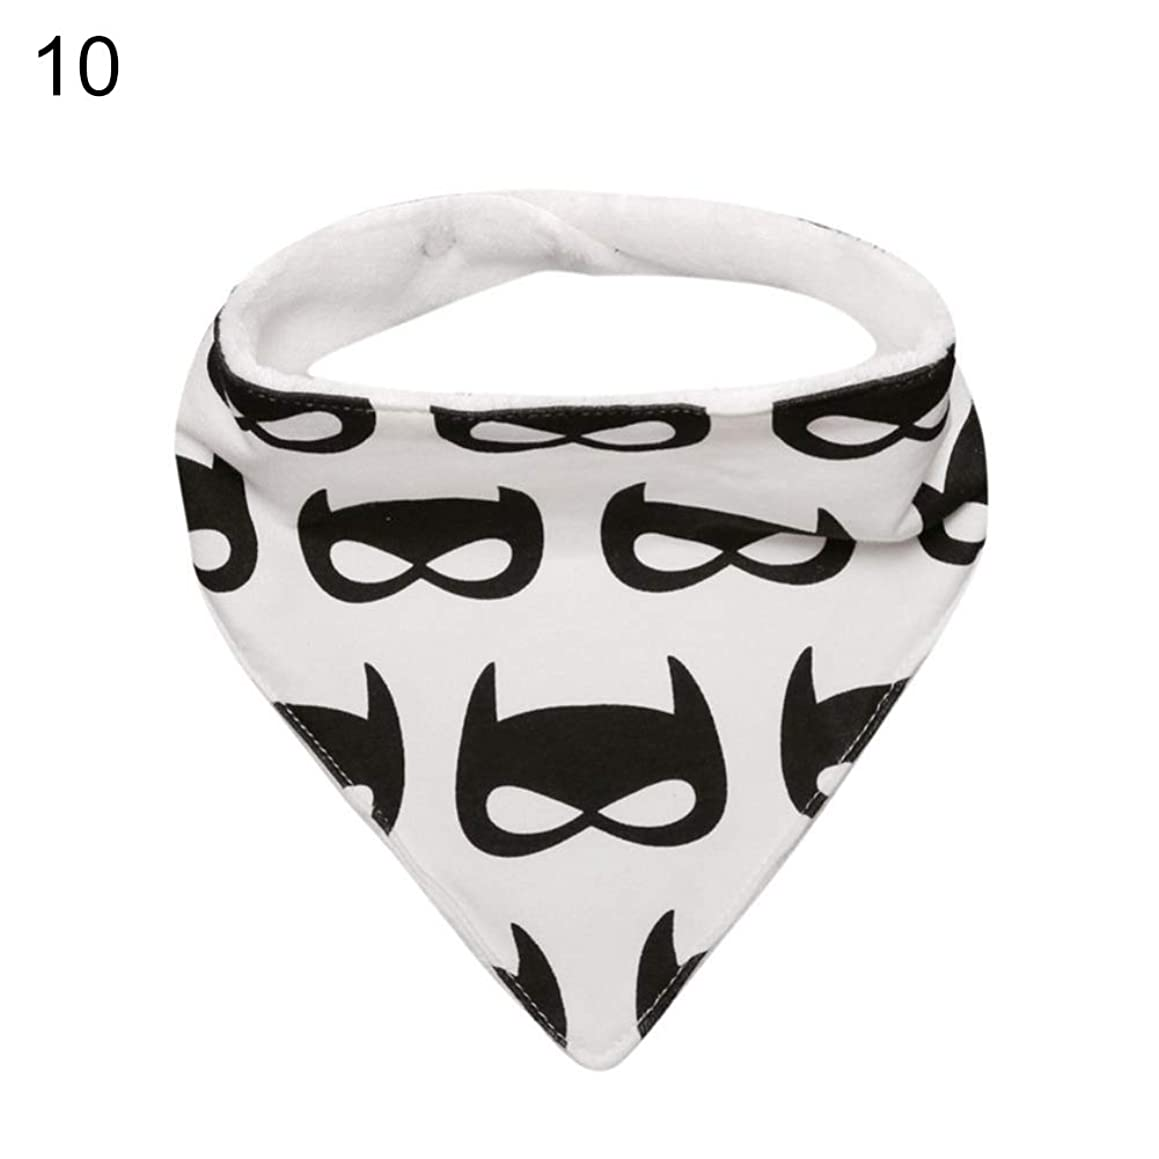 yanQxIzbiu Kids Baby Feeding Head Scarf Towel Bib Boy Girl Bandana Saliva Triangle Towel - #10 Big Batman